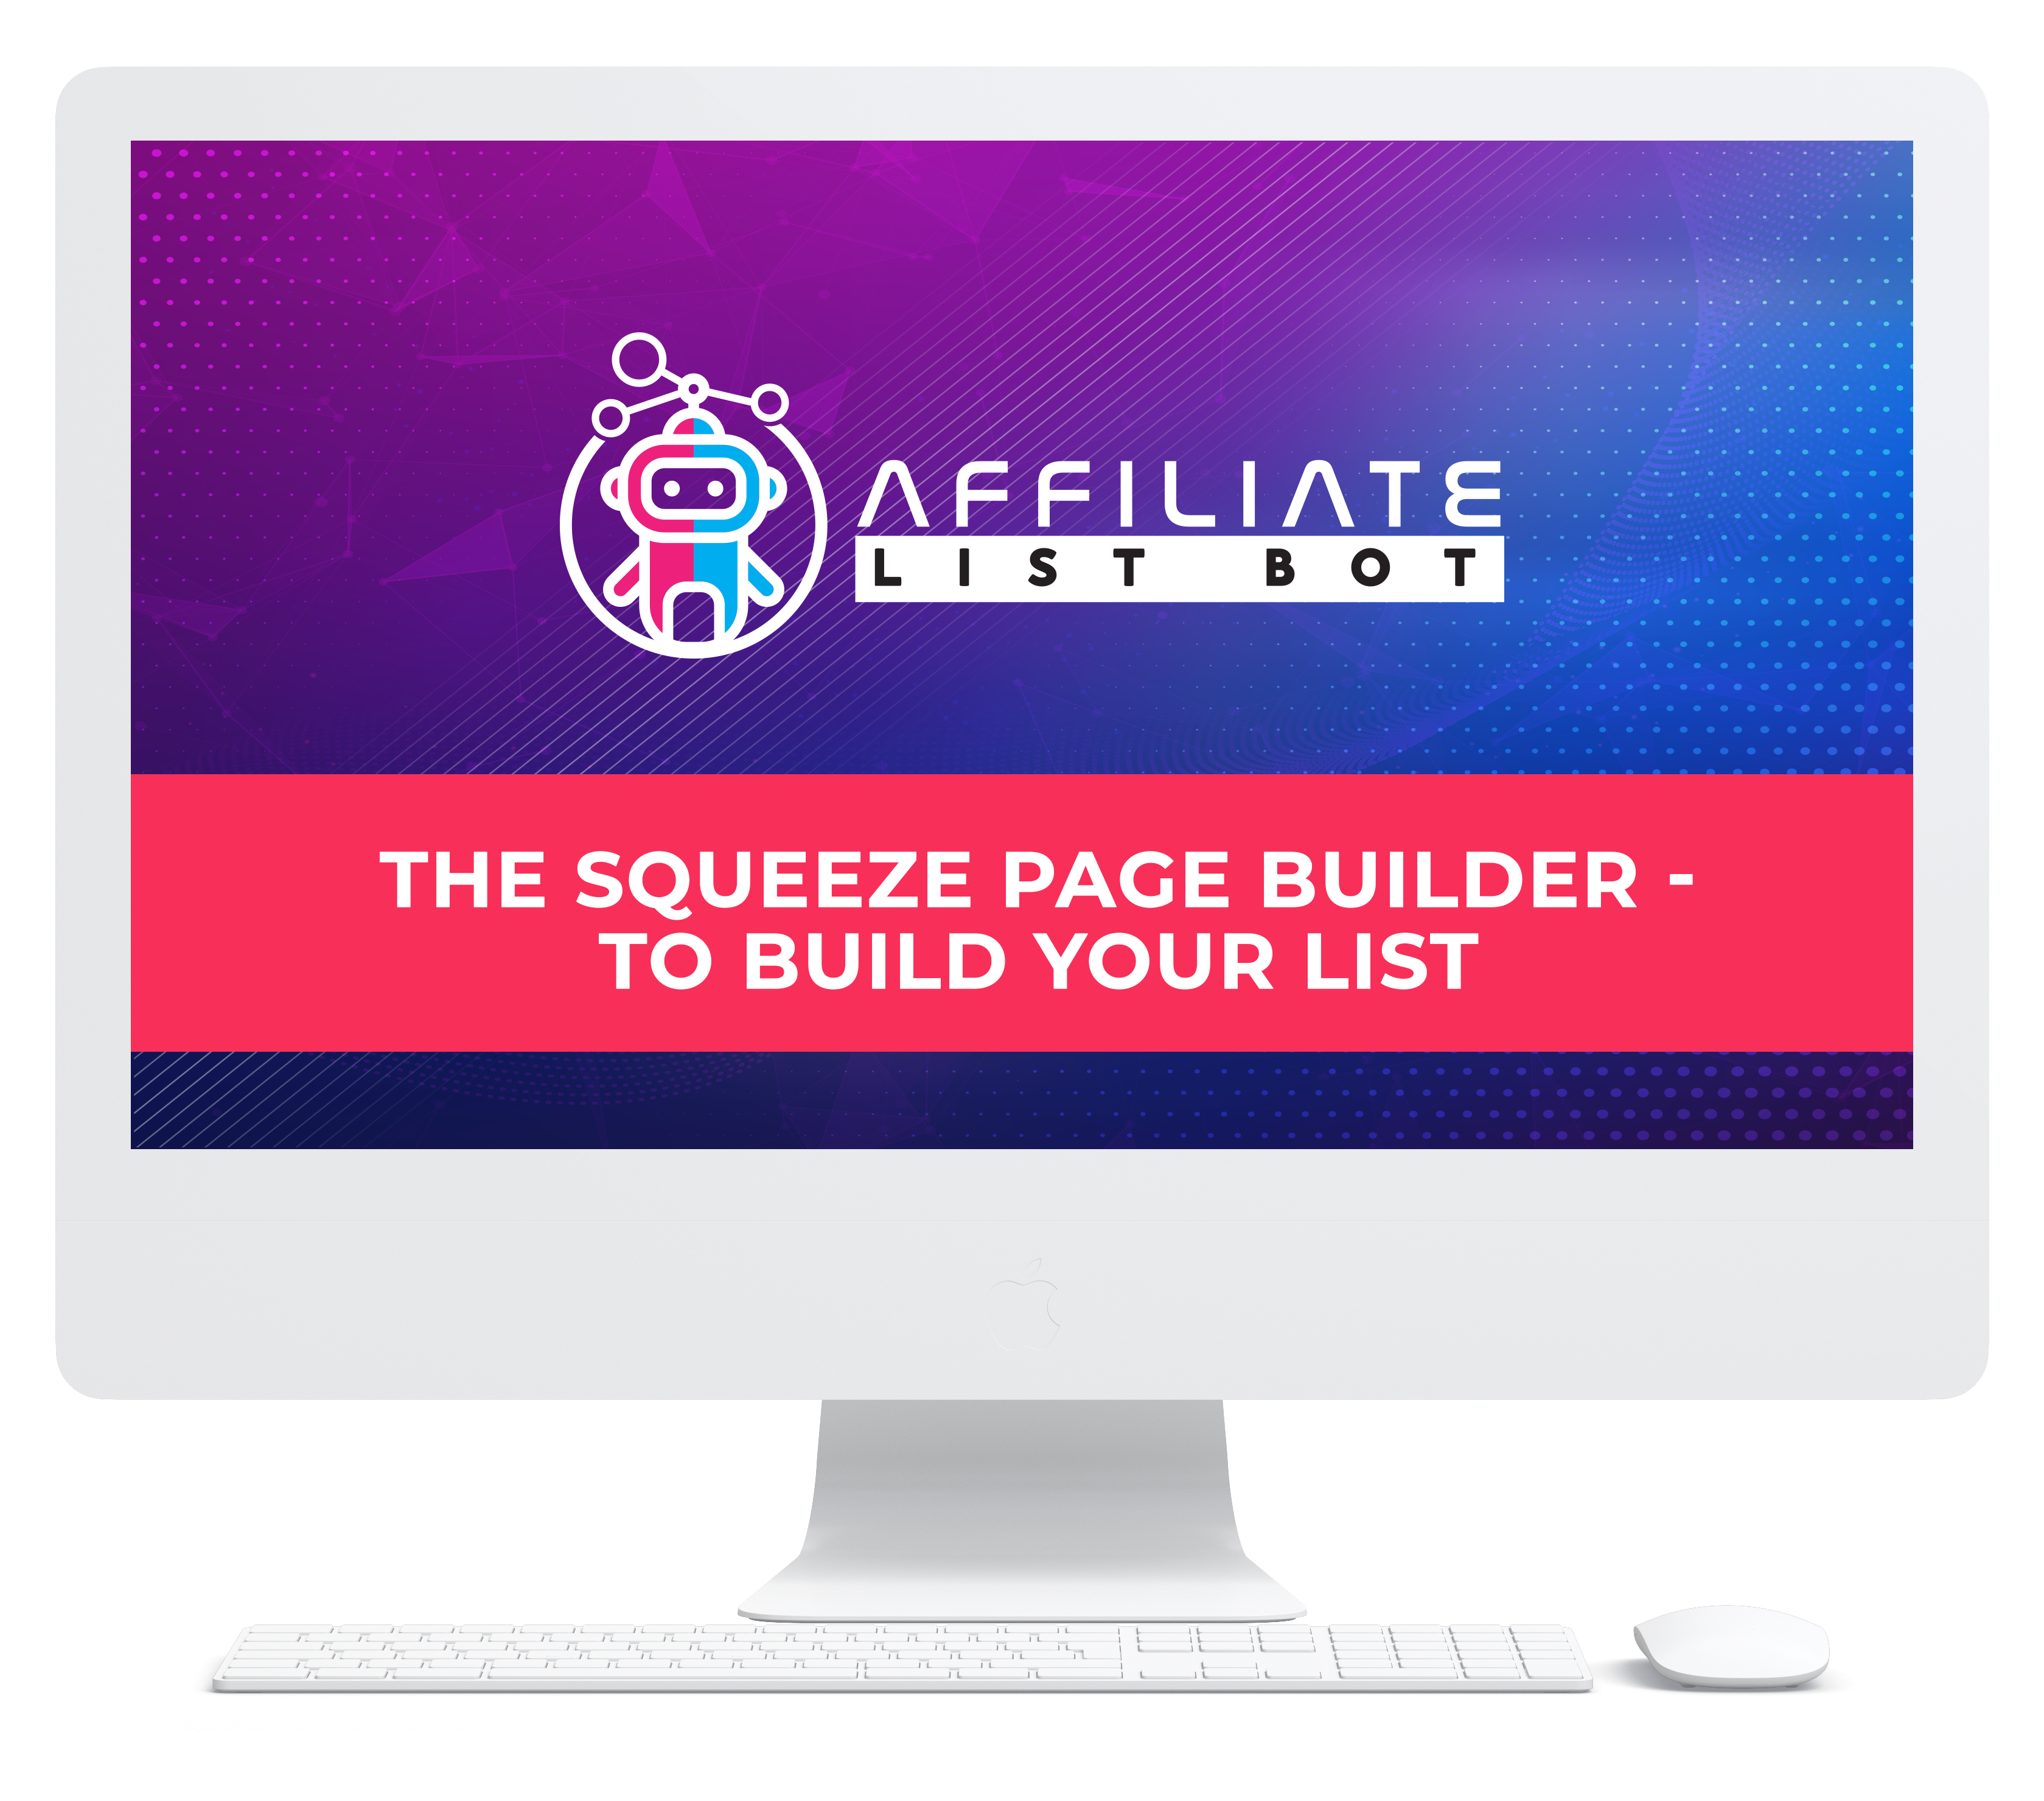 Affiliate List Bot Review - software 1